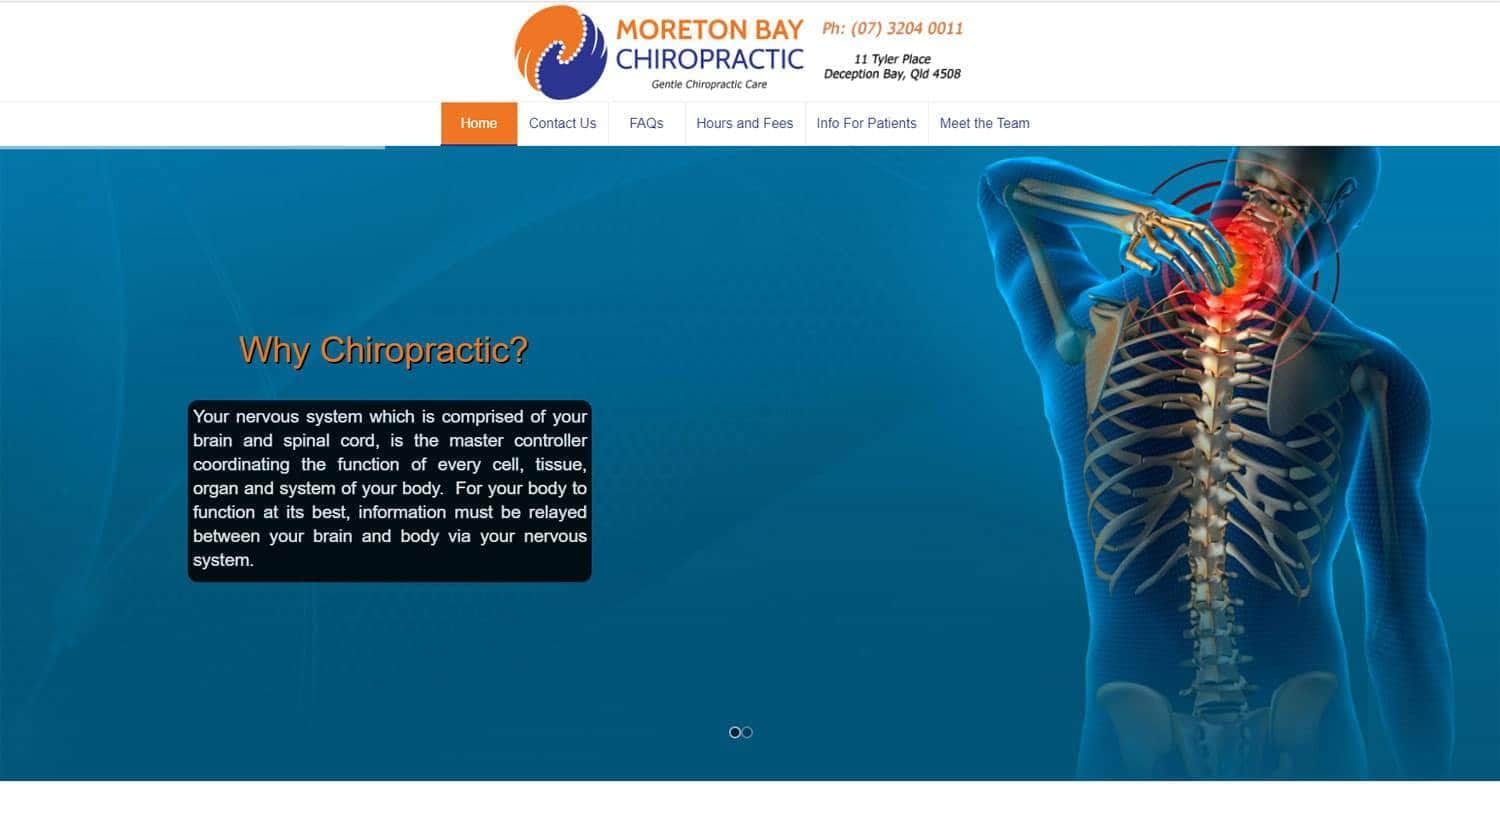 Moreton Bay Chiropractic Home Page